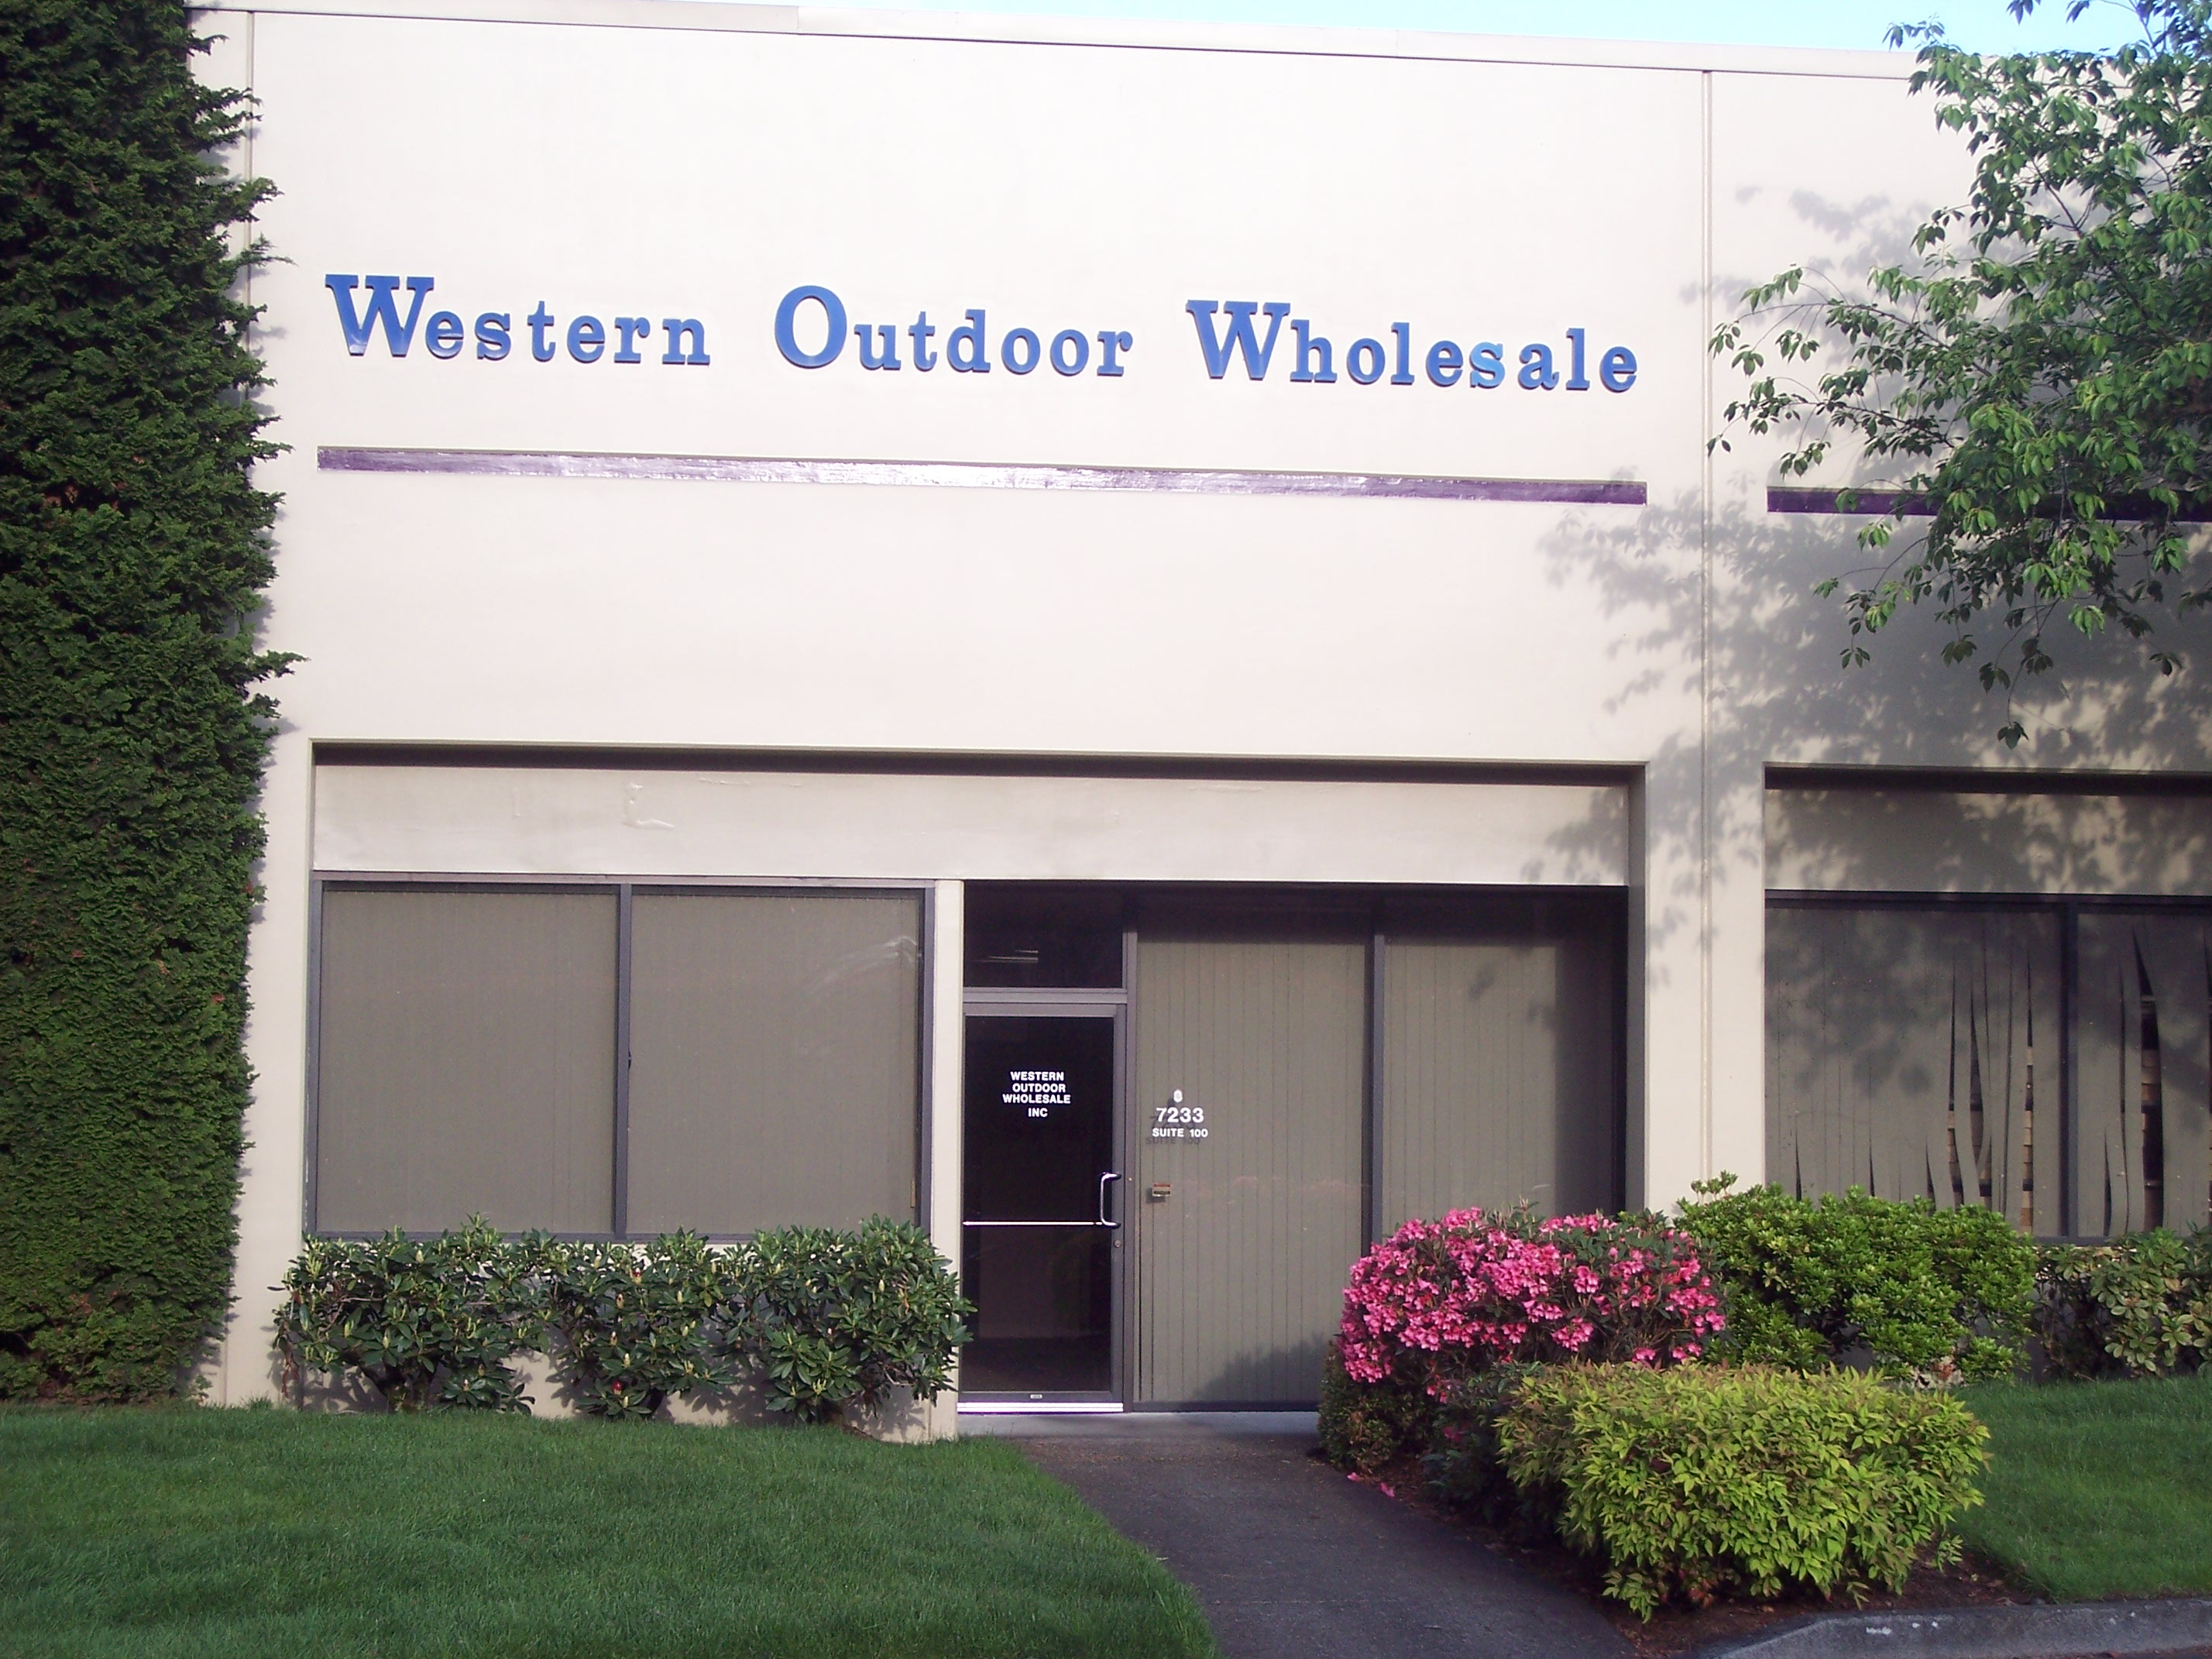 Western Outdoor Wholesale